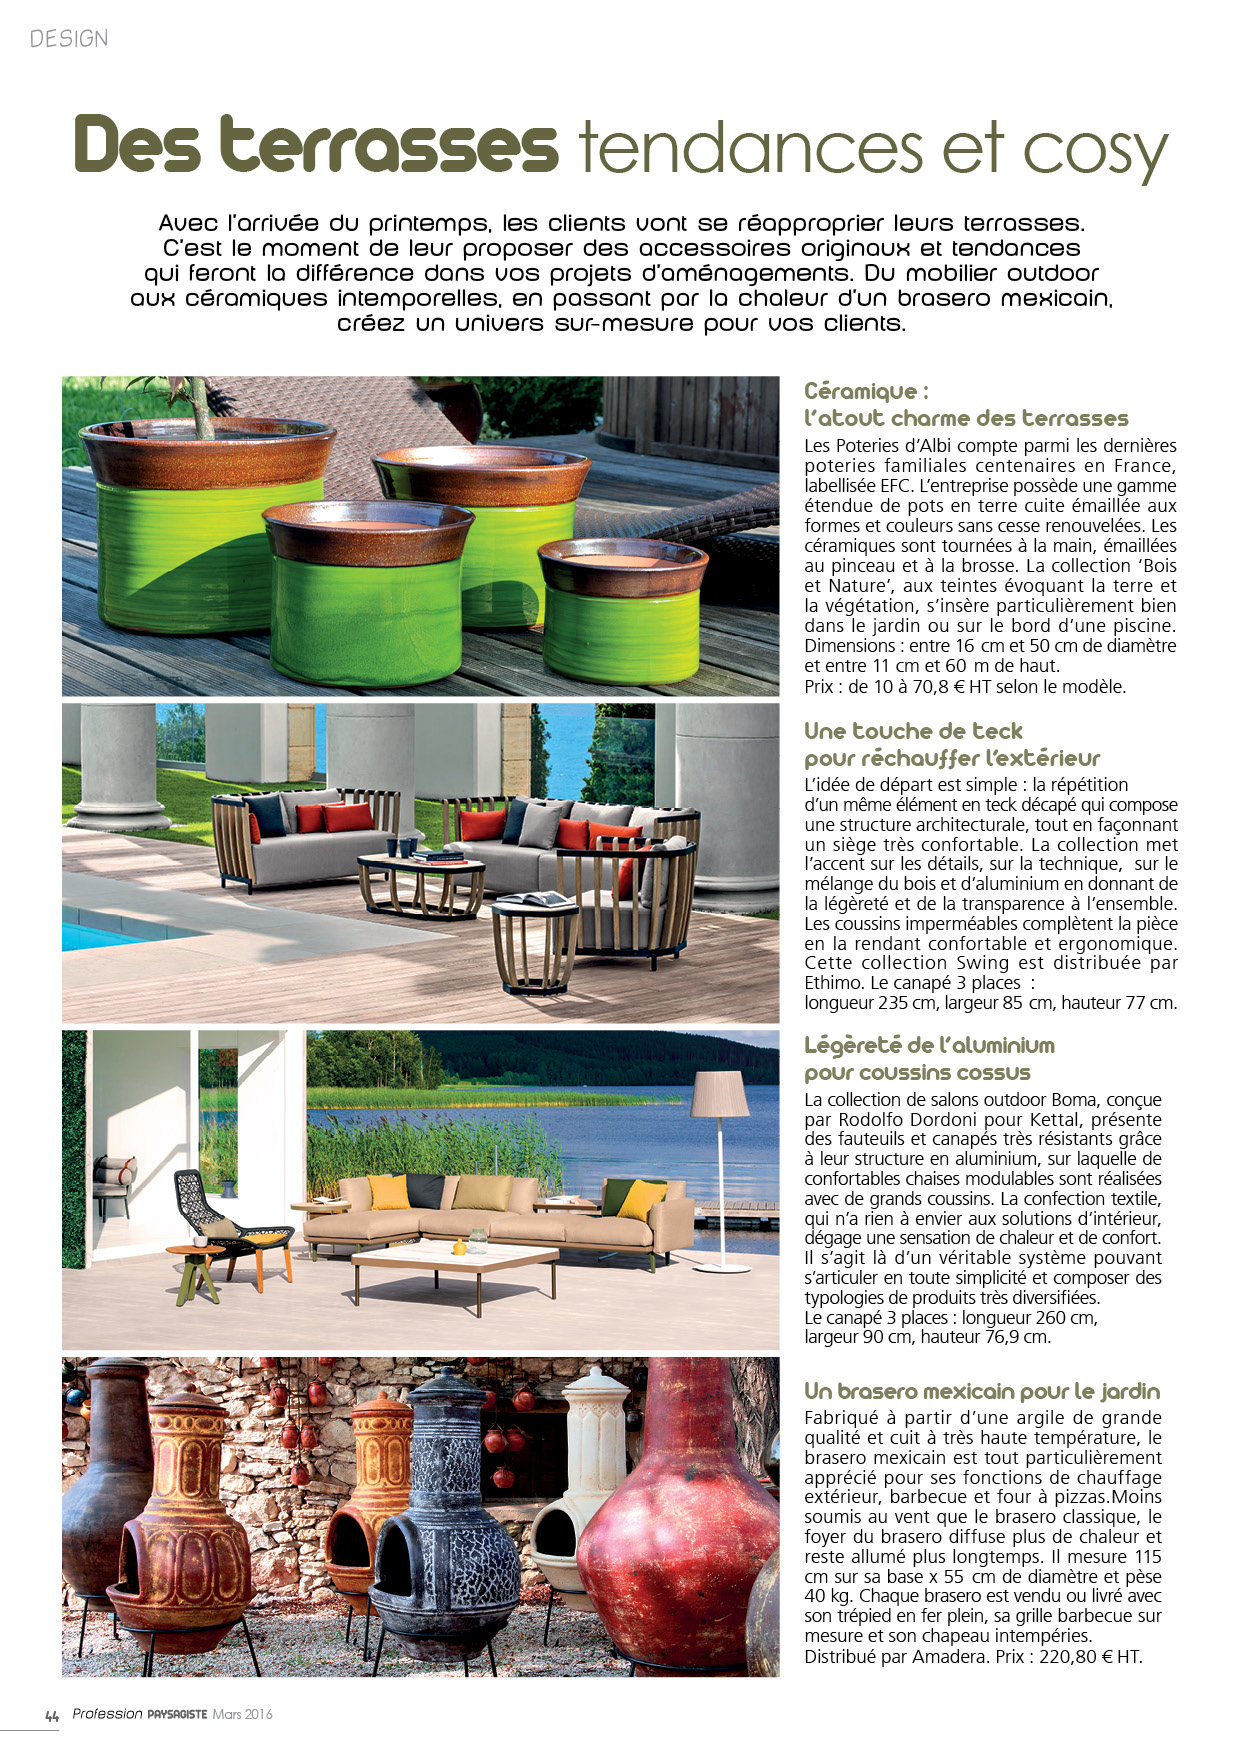 profession paysagiste article 2016 poterie d'albi terrasses tendances cosy